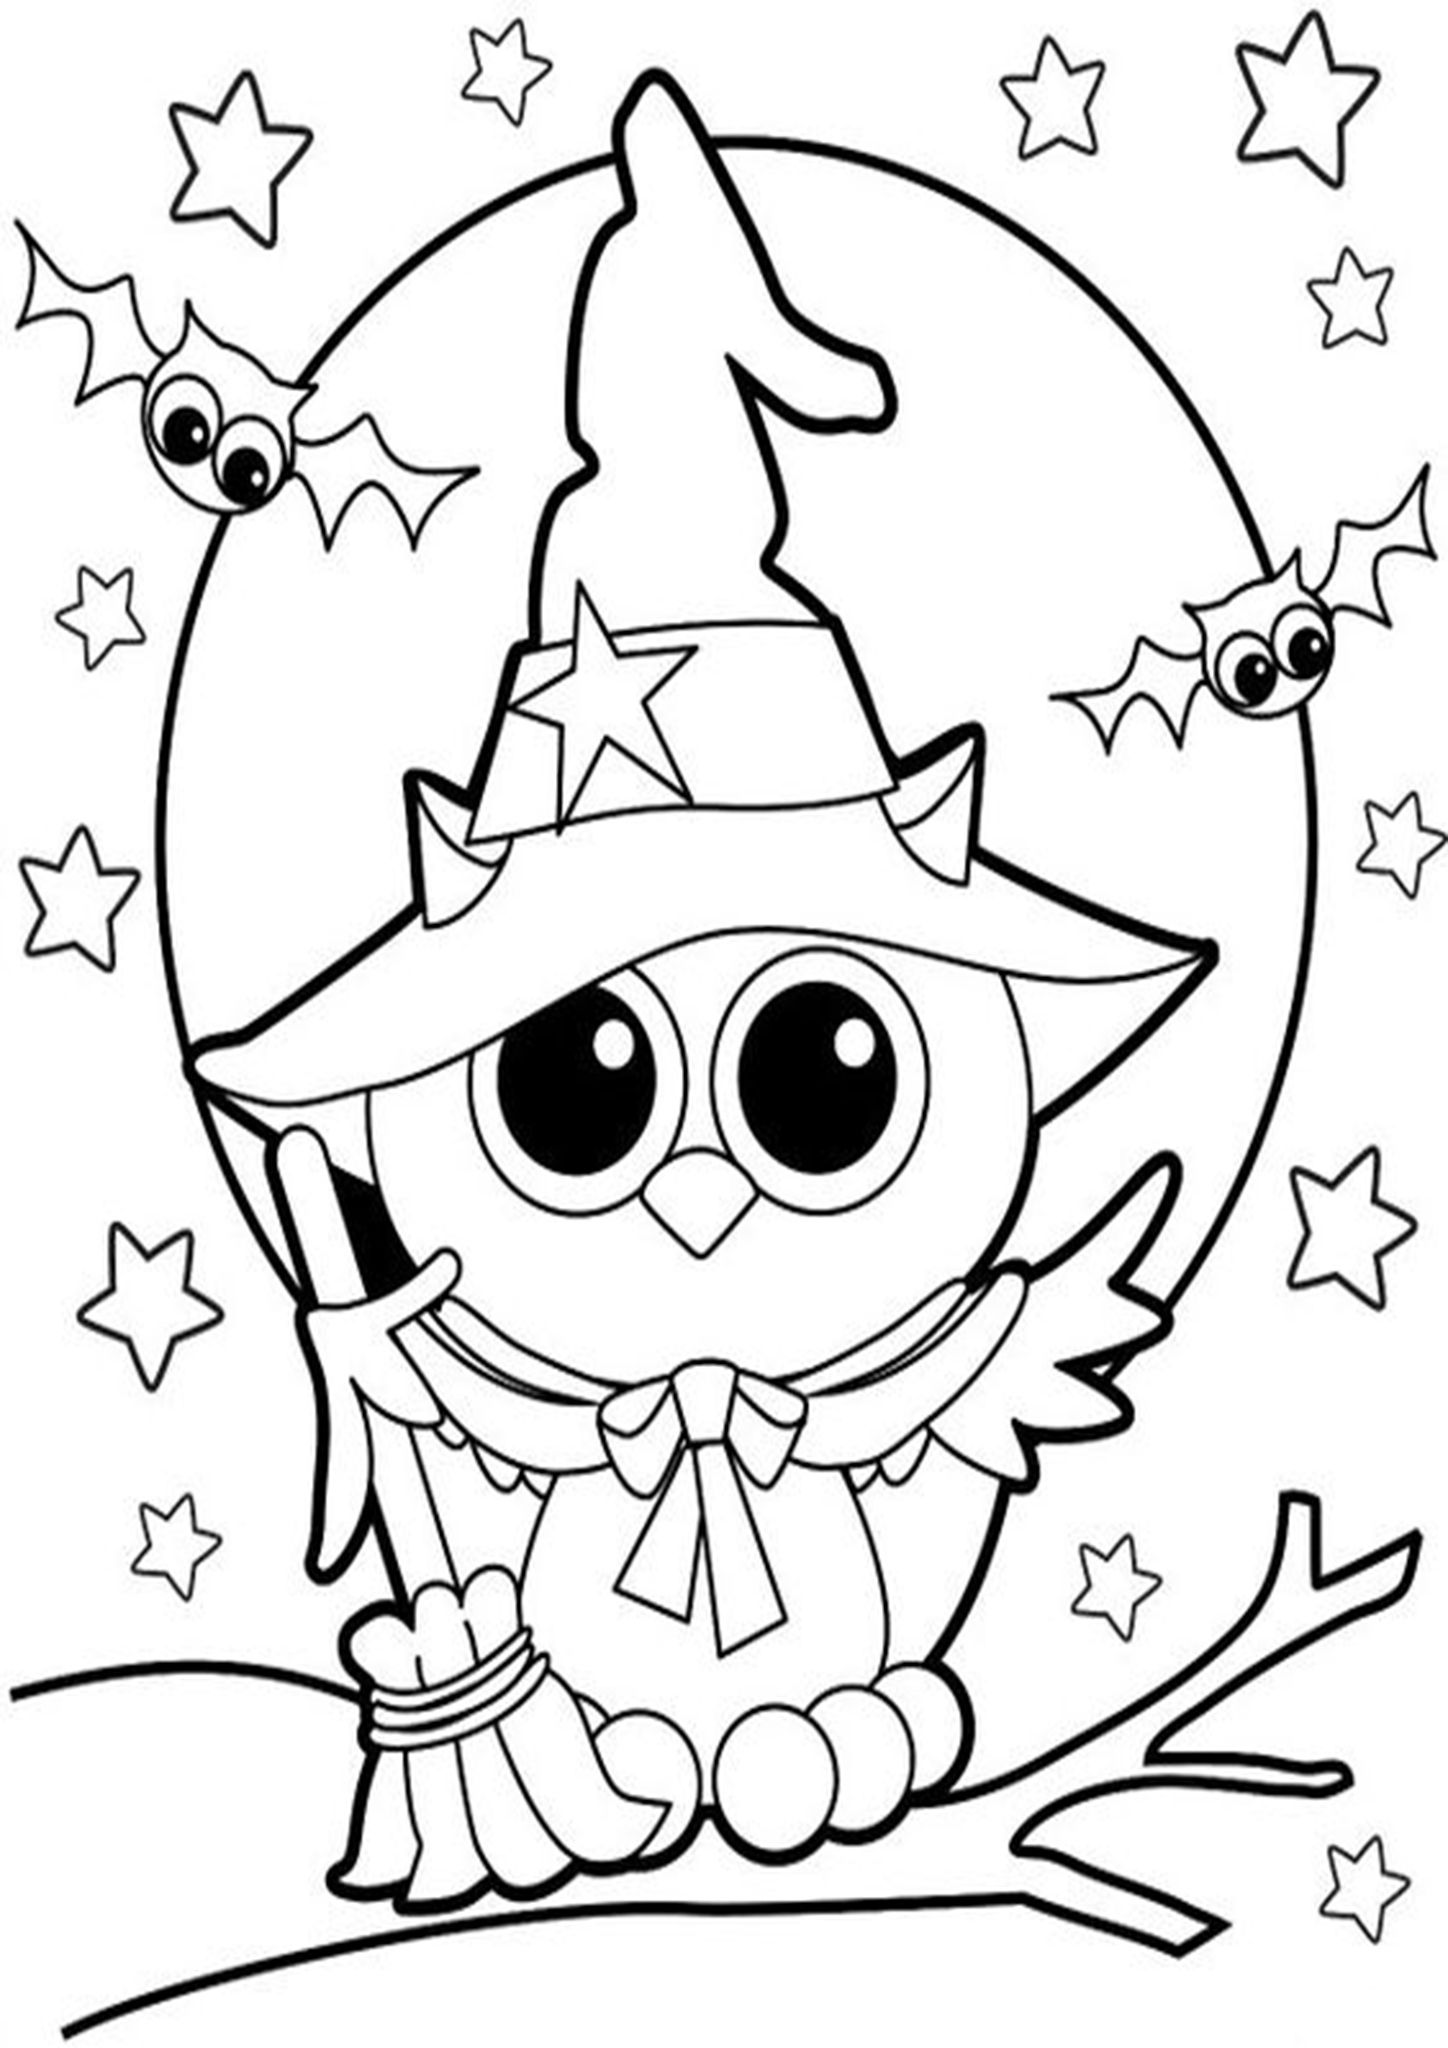 Free & Easy To Print Owl Coloring Pages in 2020 Owl